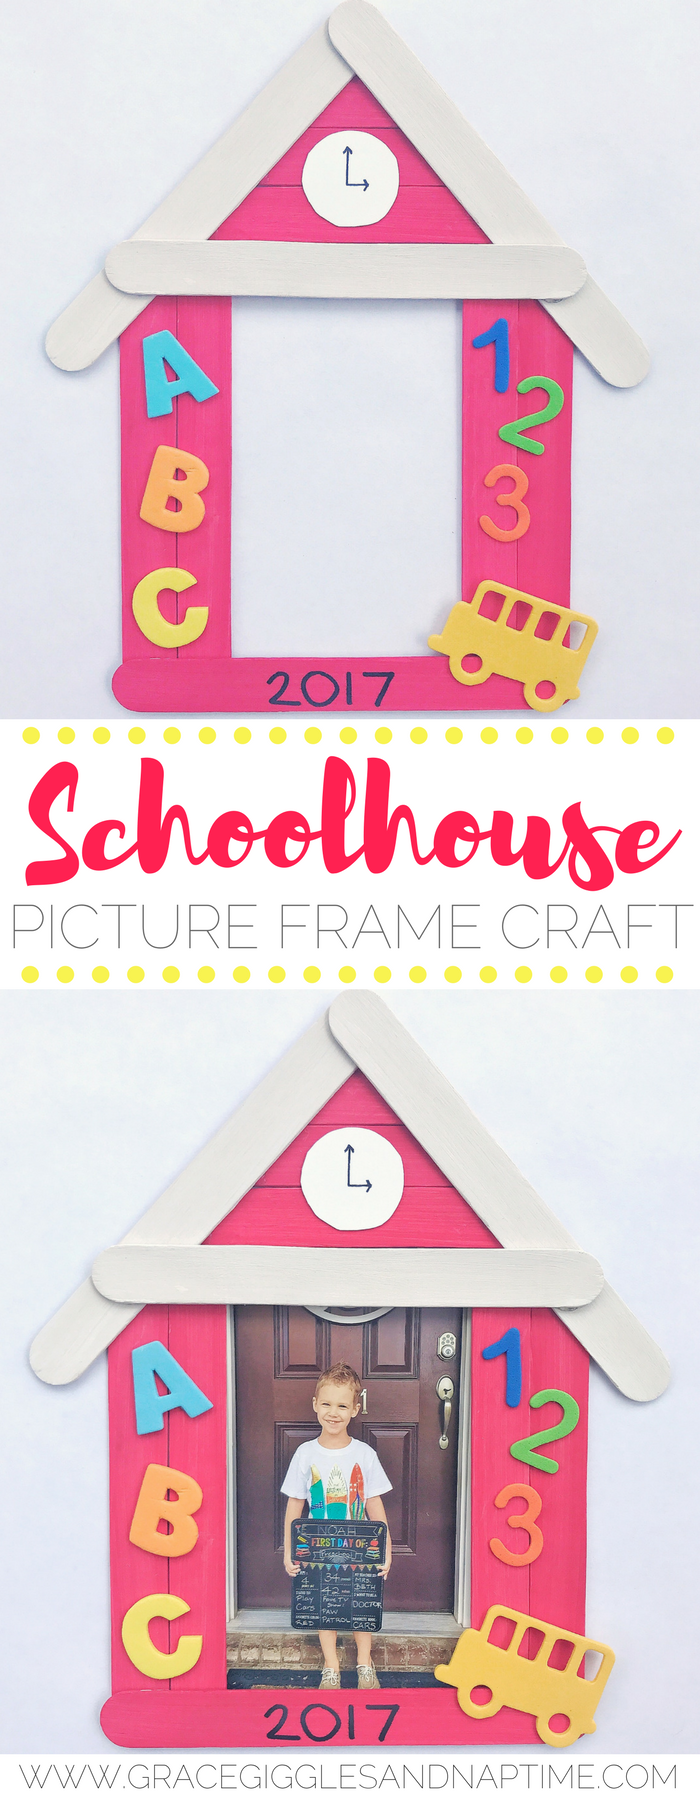 Popsicle stick schoolhouse picture frame craft picture frame popsicle stick schoolhouse picture frame craft picture frame crafts frame crafts and school jeuxipadfo Gallery